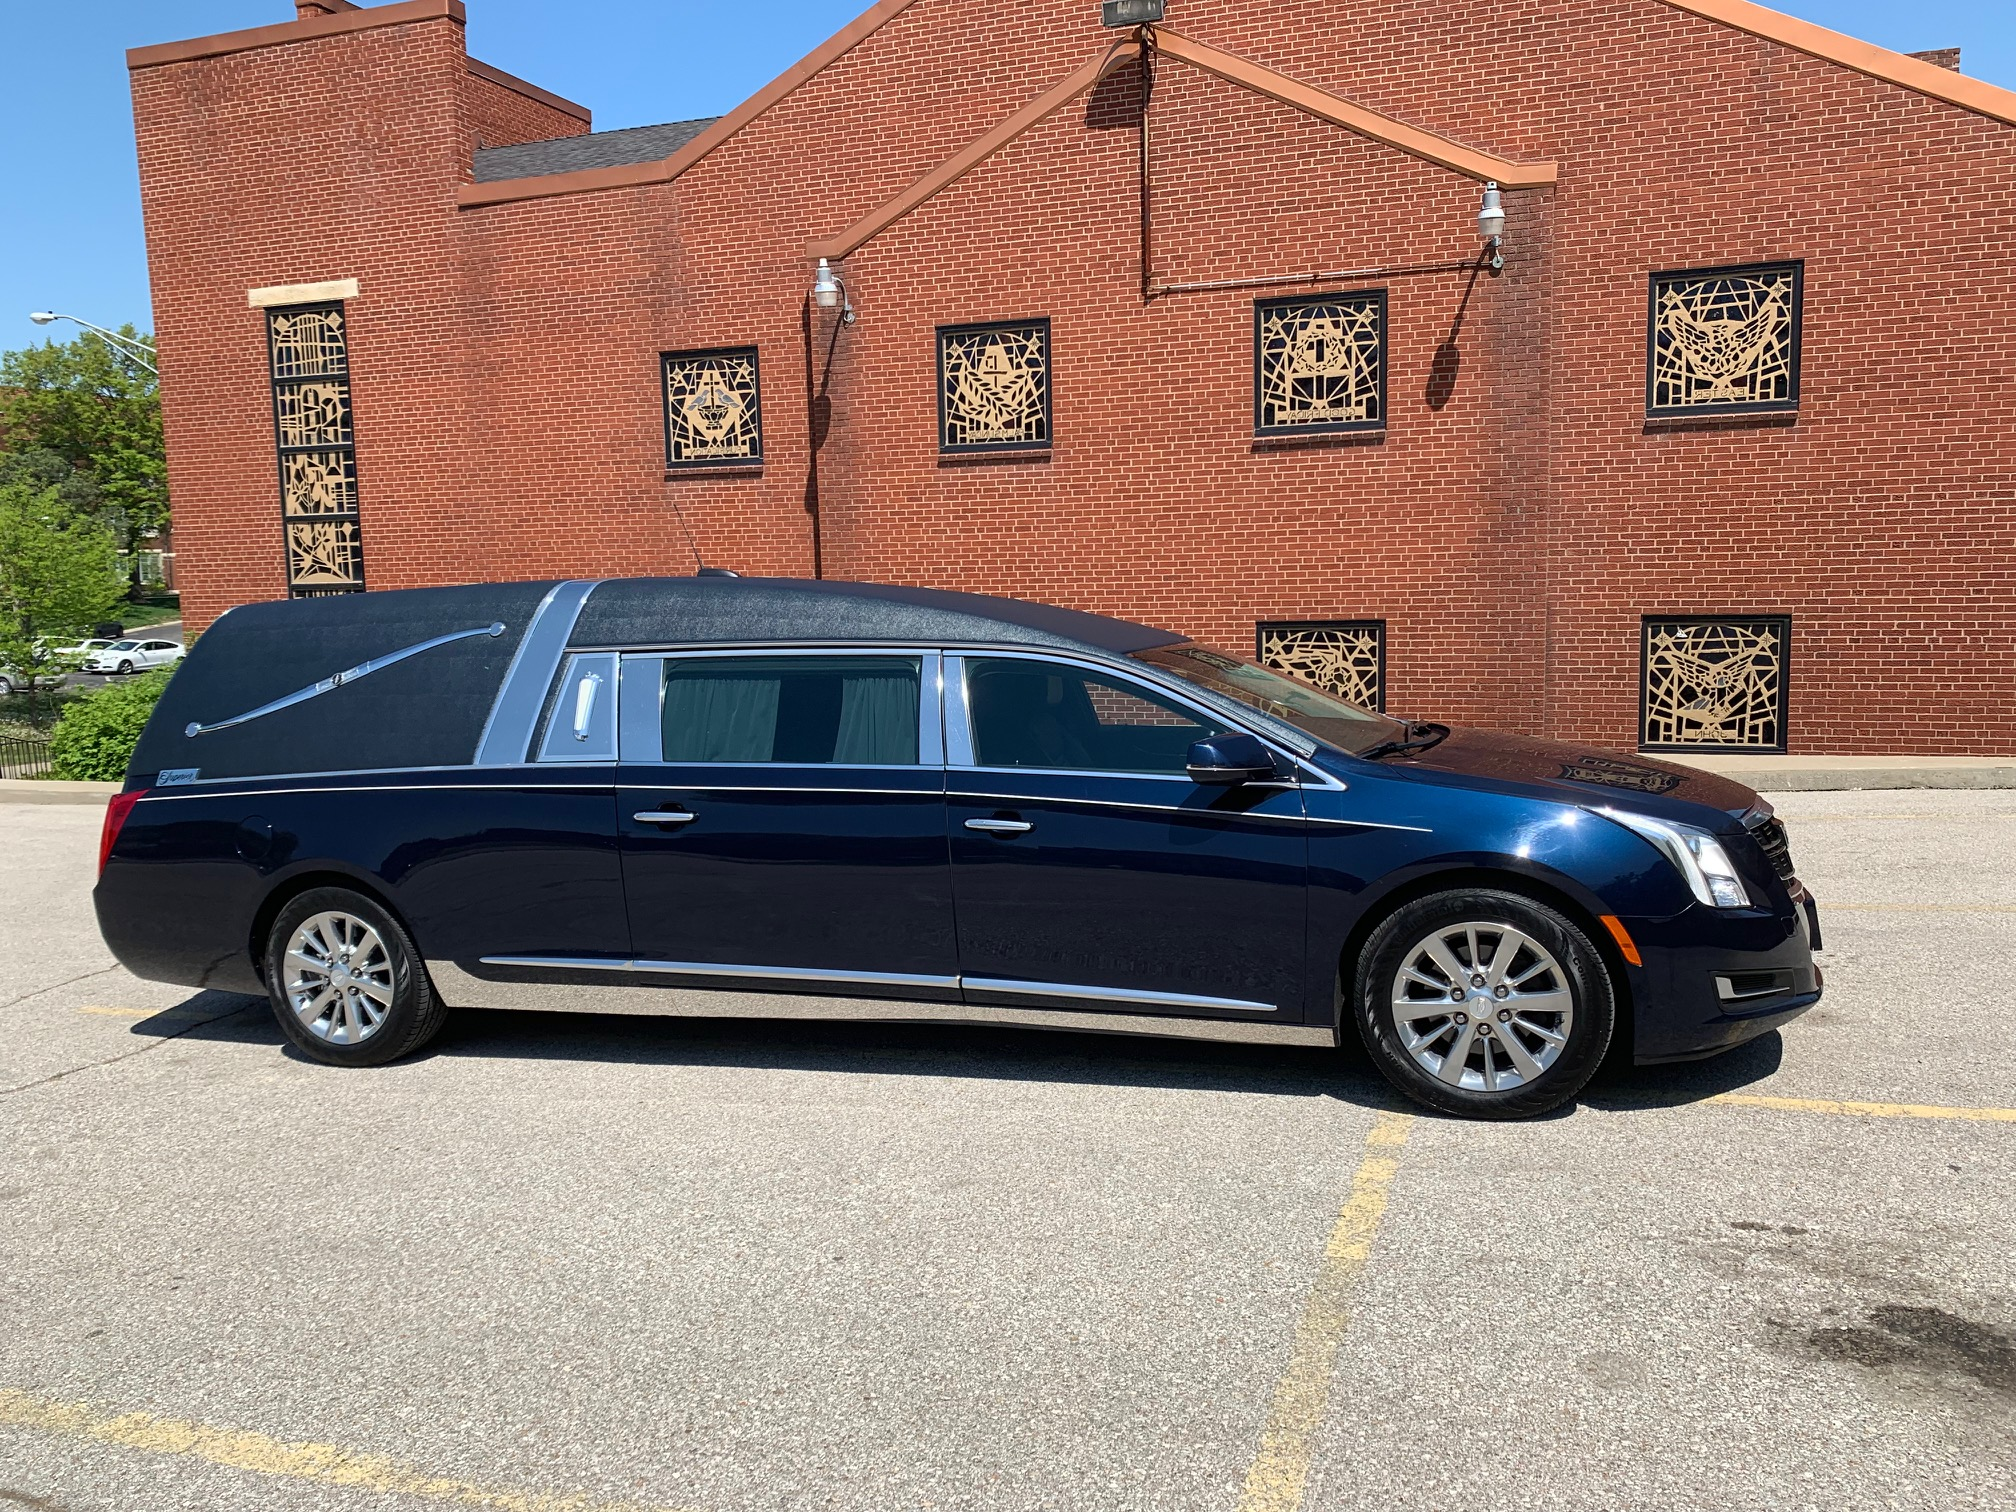 2017 Cadillac Superior Hearse for Sale 5